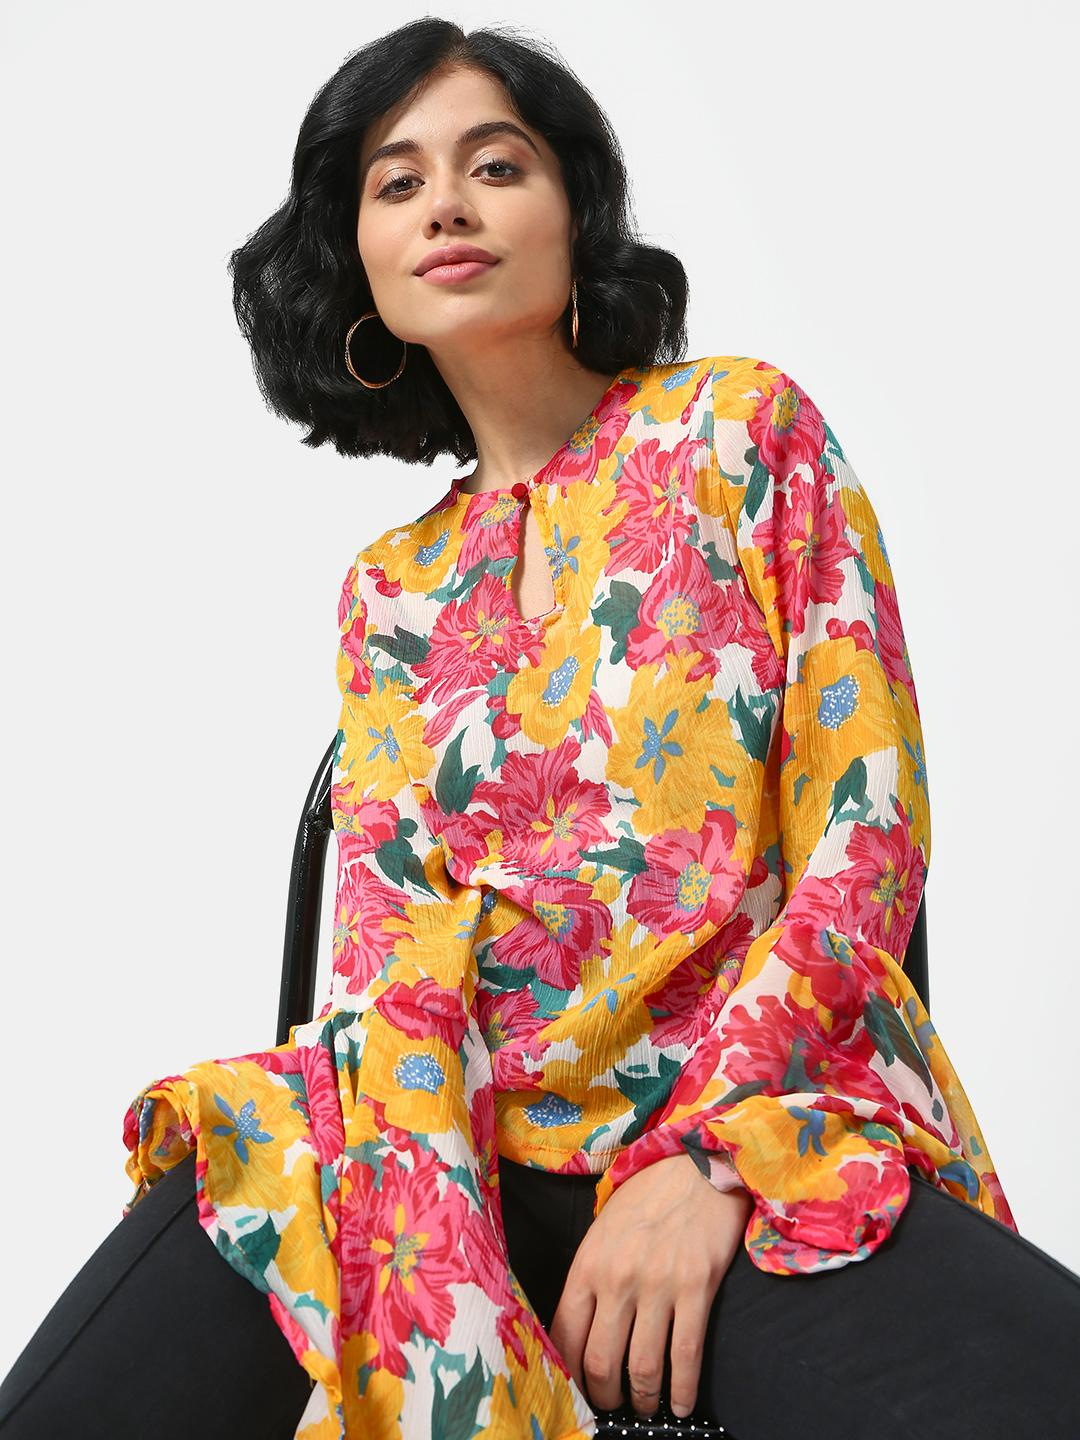 Cation Yellow Floral Printed Ruffle Sleeves Top 1